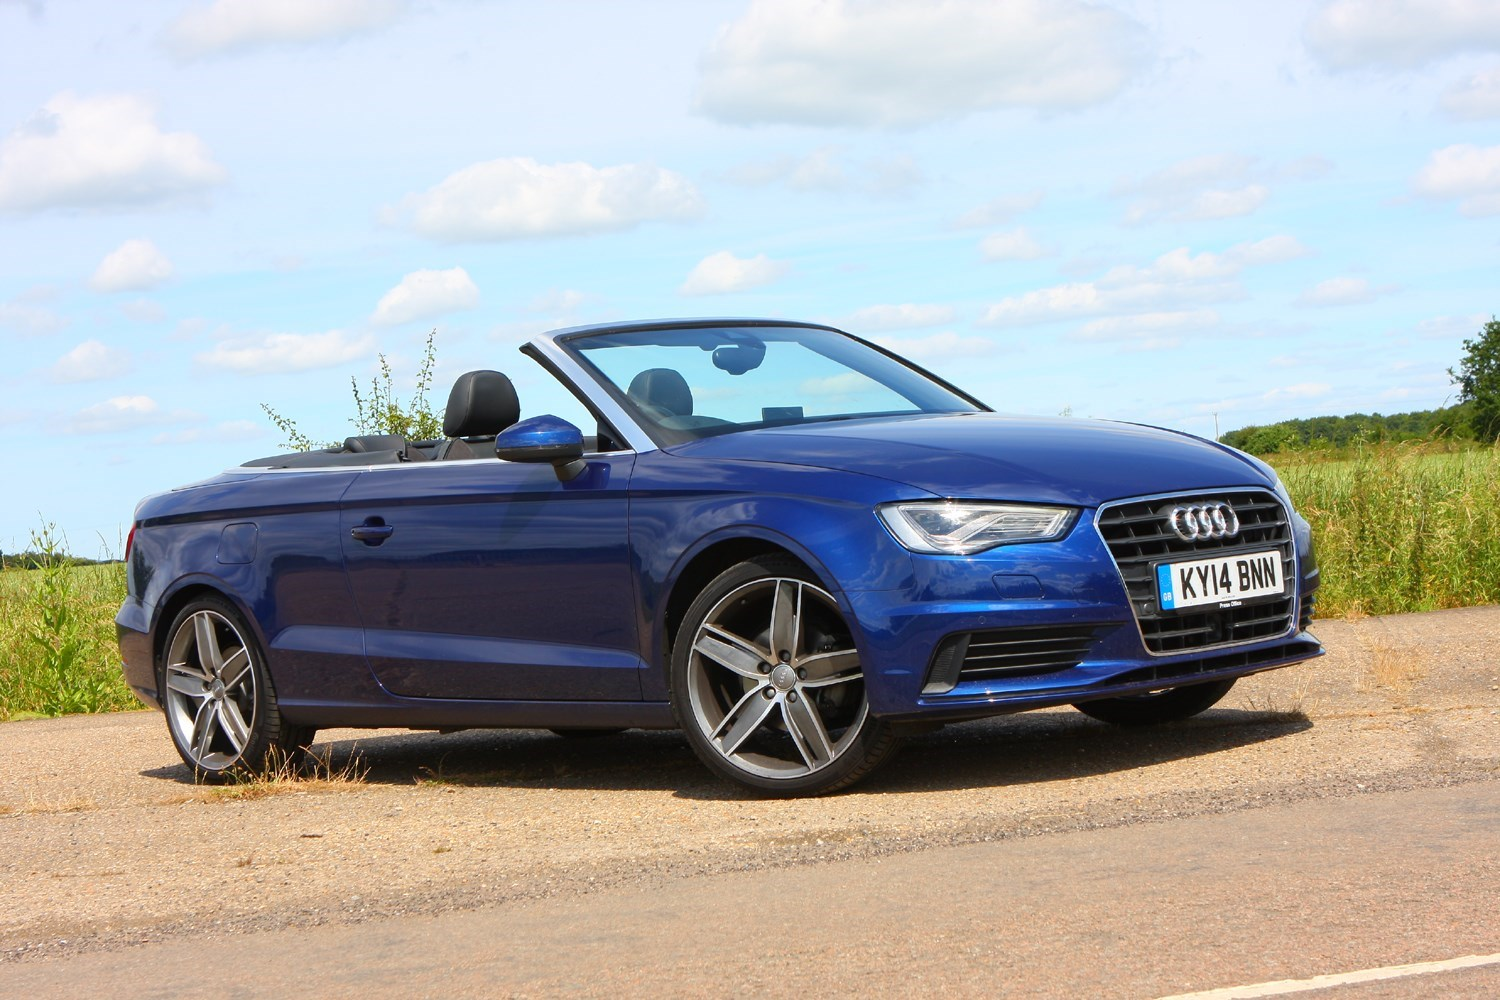 Audi A3 Cabriolet - best convertible cars